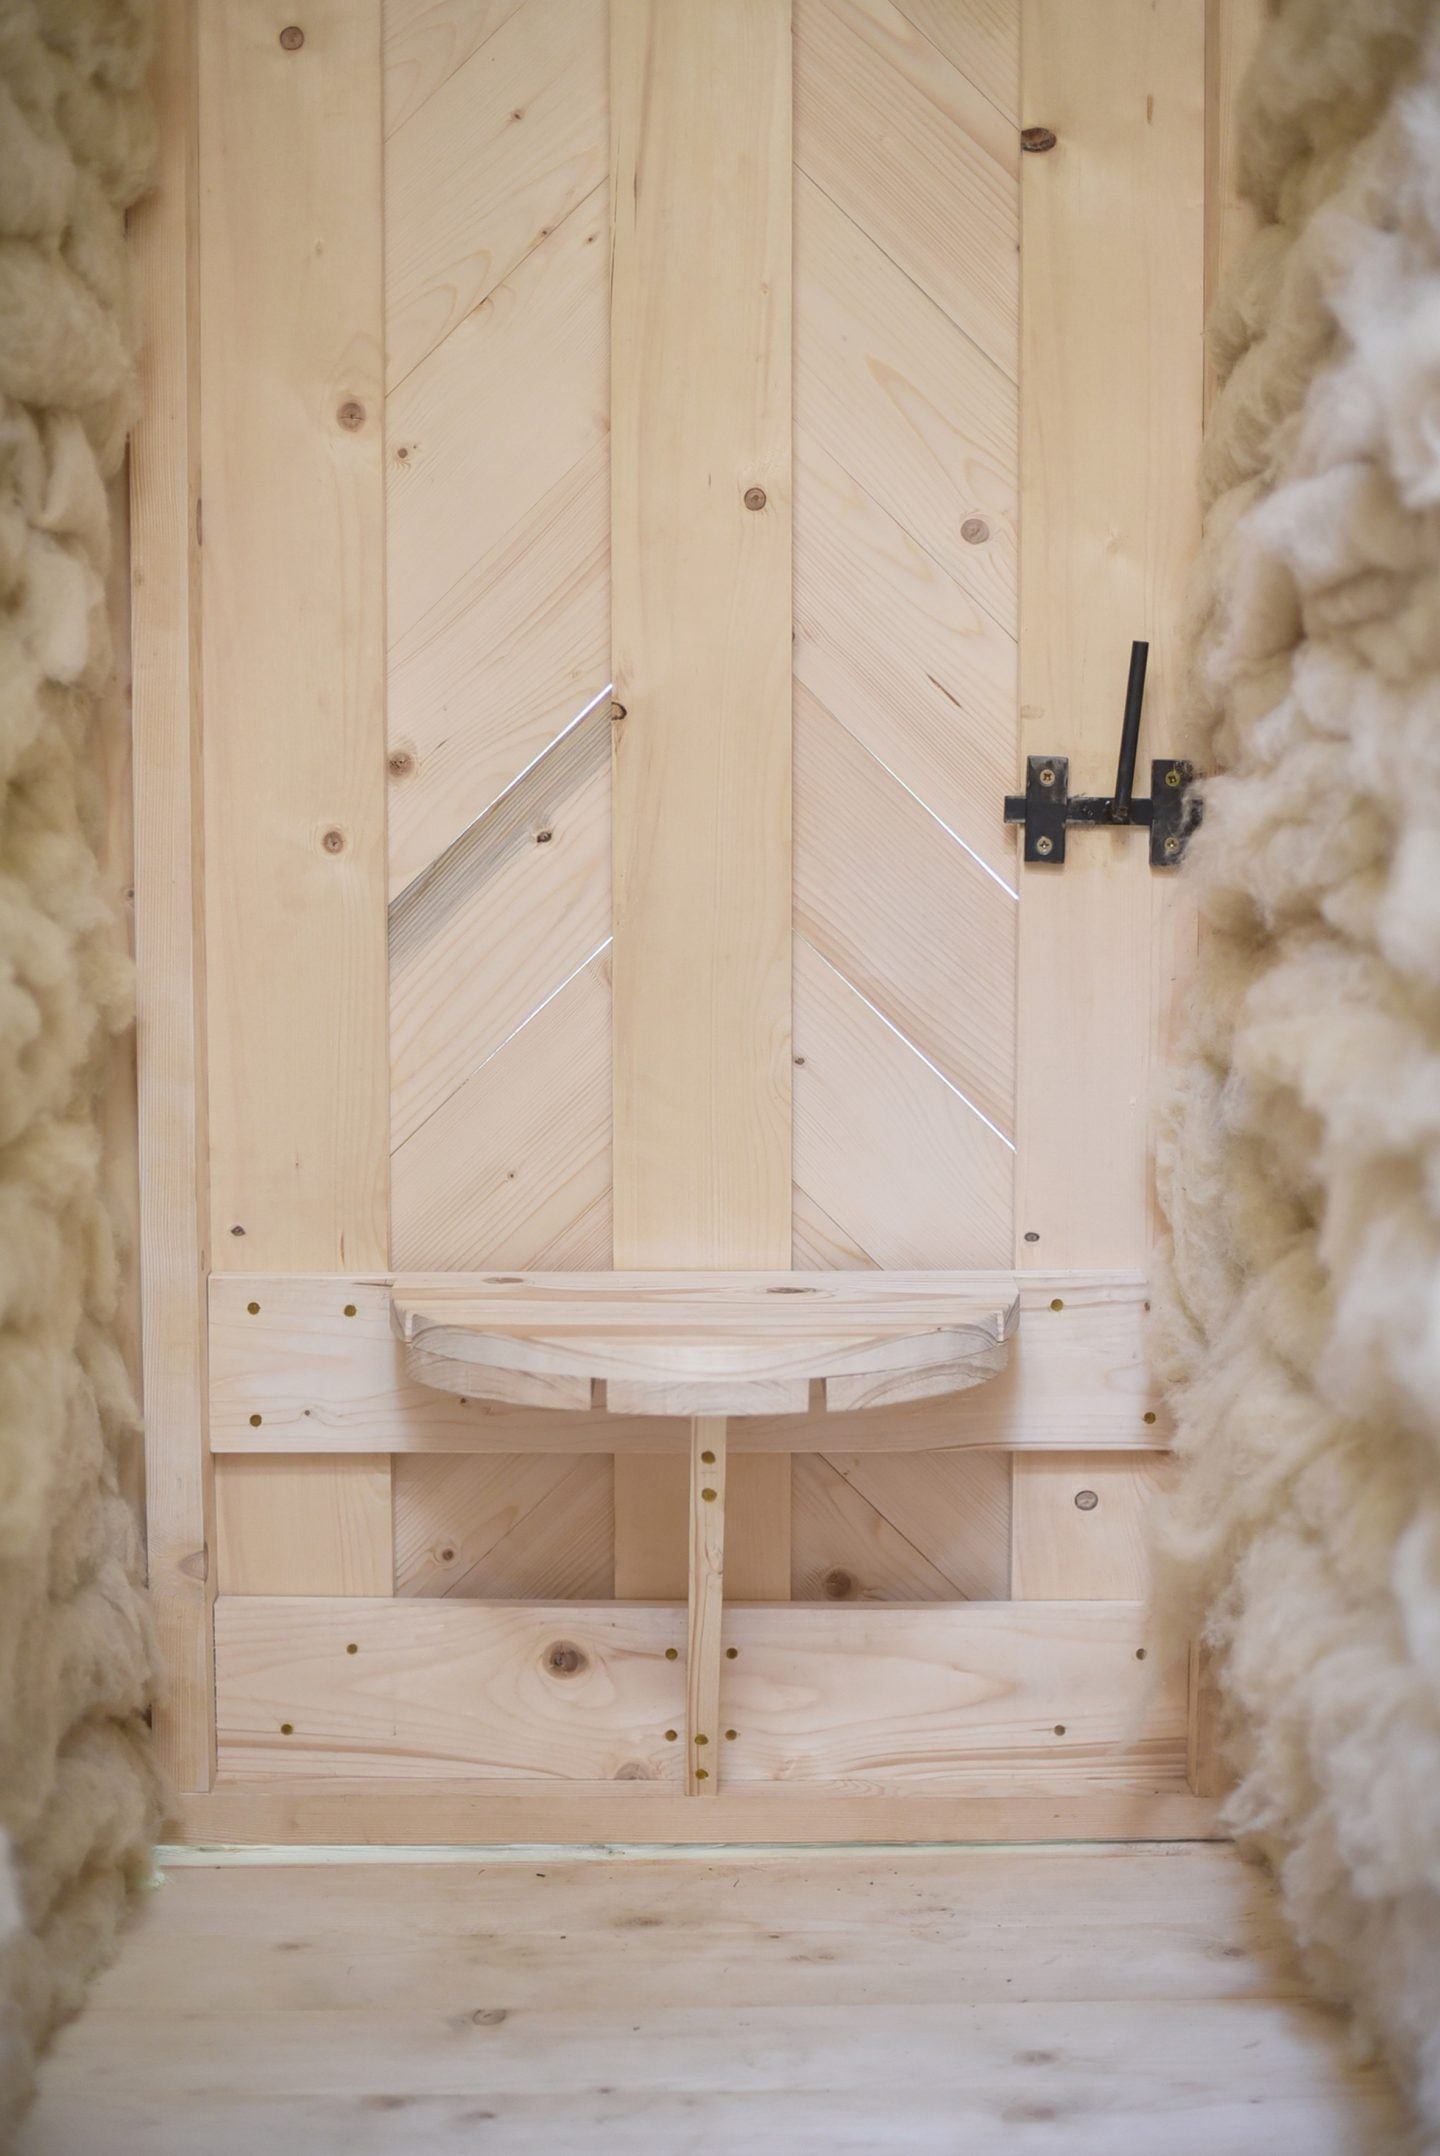 IGNANT-Architecture-AUW-Wool-House-9